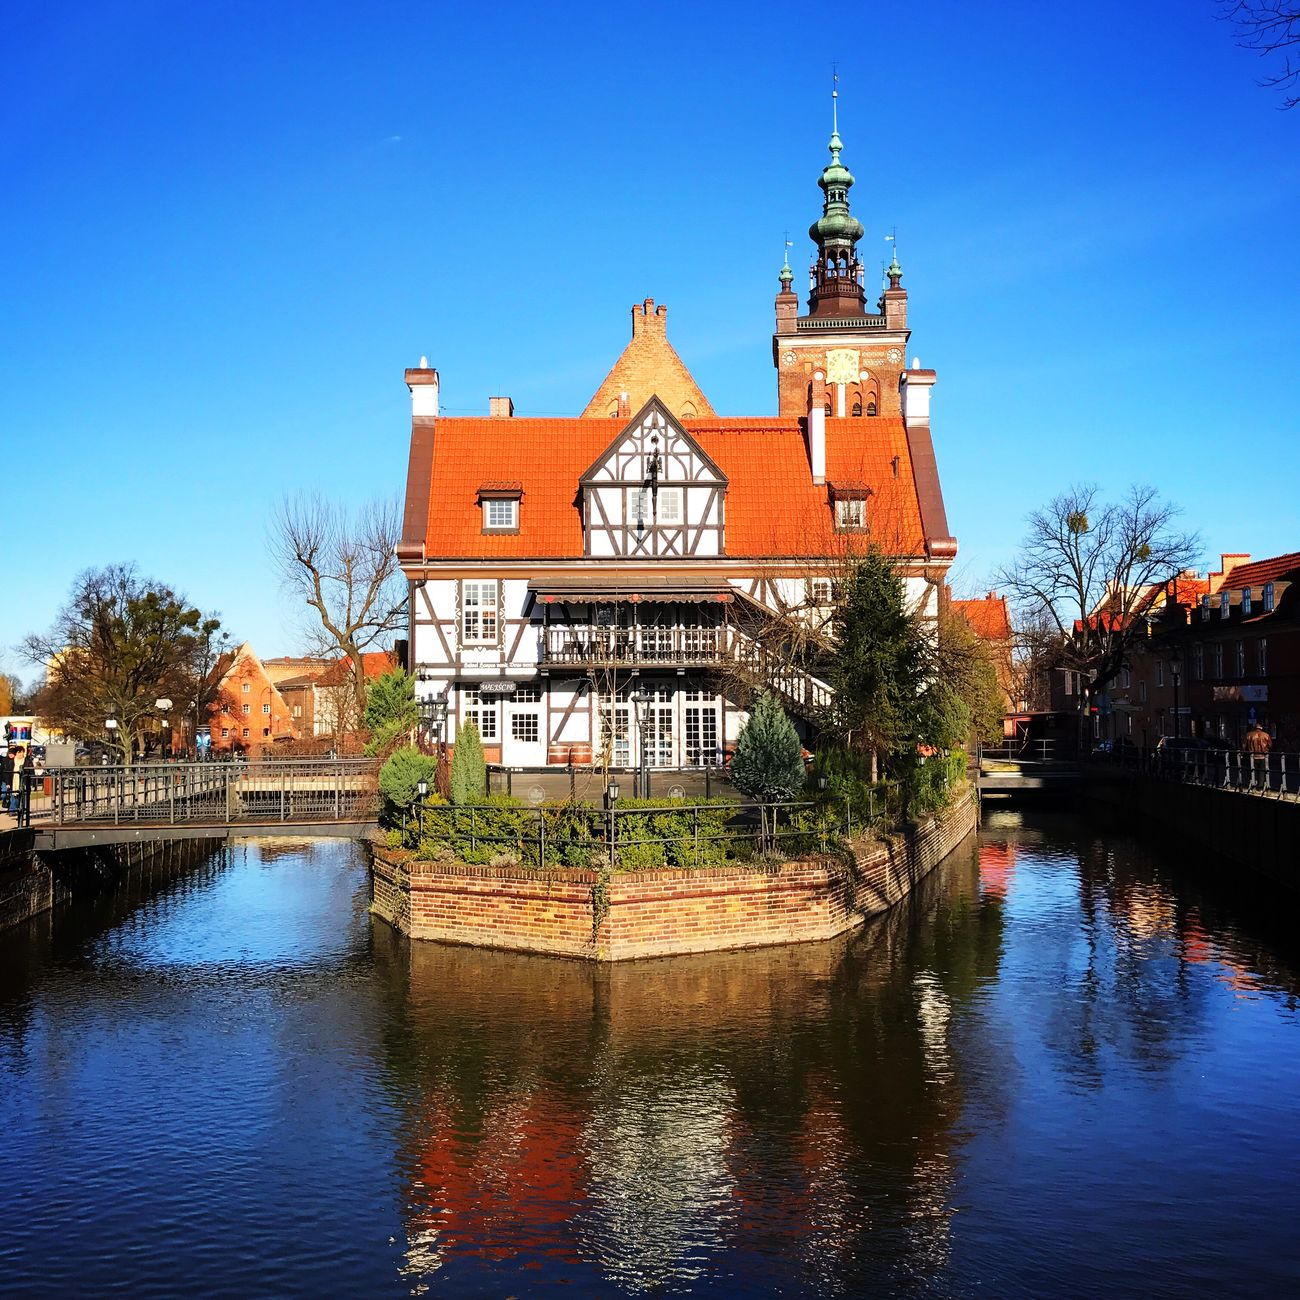 Water Tree Built Structure Architecture River Reflection Building Exterior Waterfront Poland Gdansk Gdansk Clear Sky Outdoors Travel Destinations Sky City Footbridge No People Connection Cultures Day Nature